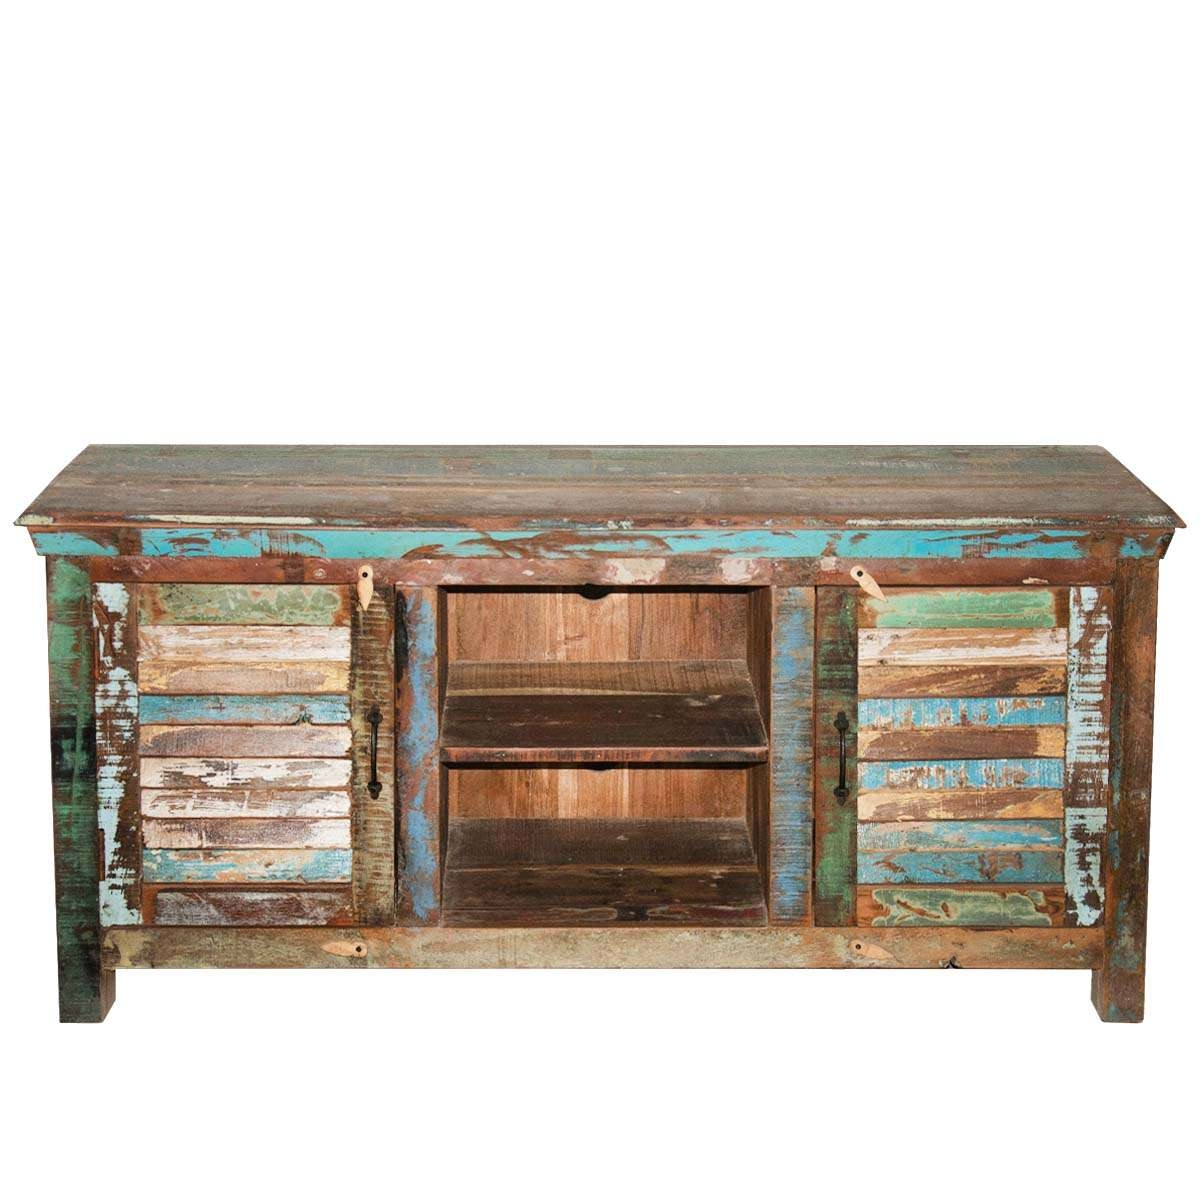 Rustic Tv Stands And Cabinets Tags : 37 Formidable Rustic Tv Stand Inside Rustic Tv Stands (View 12 of 20)